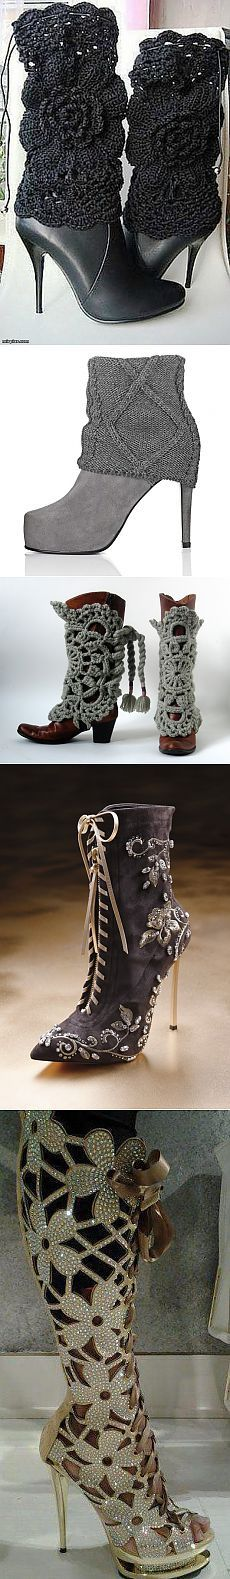 Shoes with their own hands.  Ideas for inspiration ..